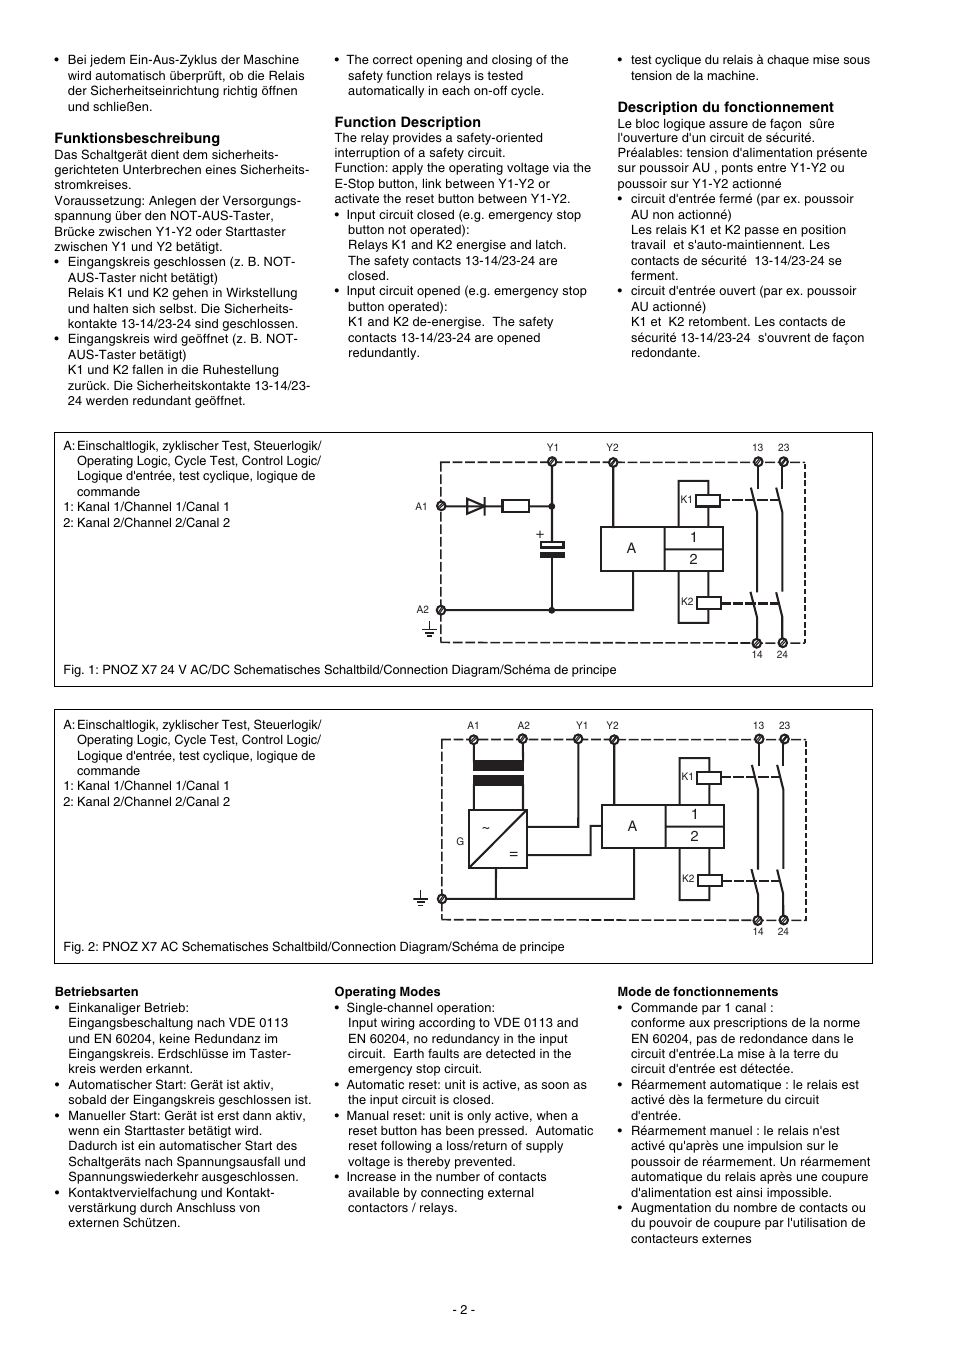 pilz pnoz x7 24vacdc 2n_o page2 pilz pnoz x7 24vacdc 2n o user manual page 2 16 also for pilz pnoz x7 wiring diagram at reclaimingppi.co